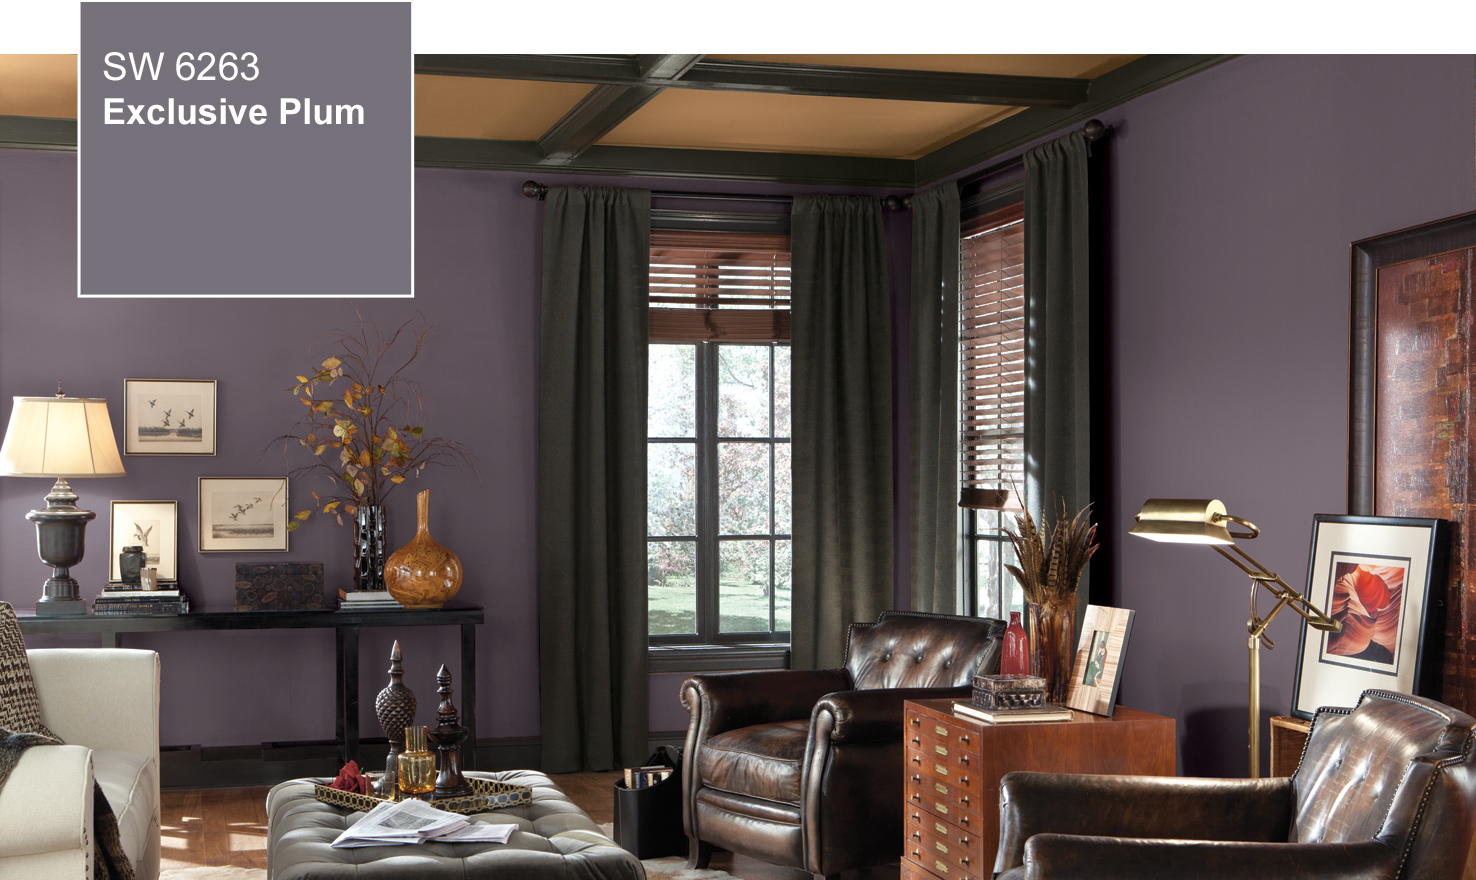 2014 Color Of The Year - Exclusive Plum (SW 6263) by Sherwin-Williams